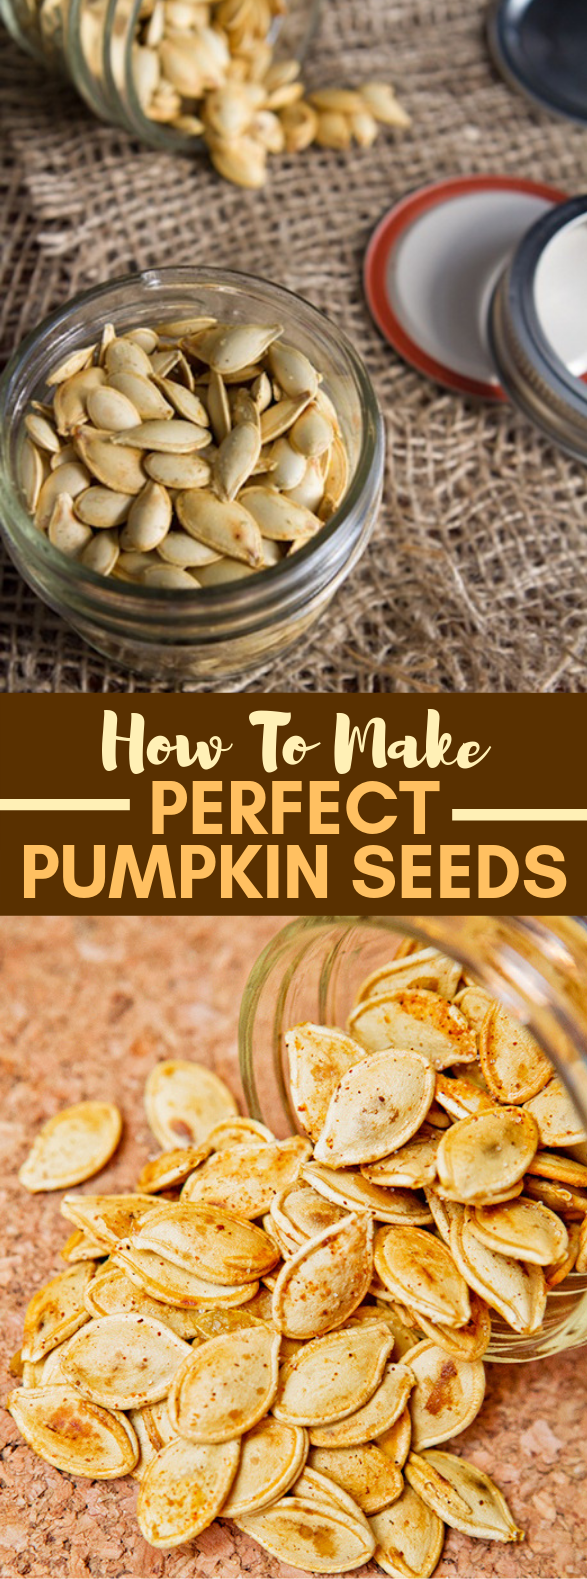 How to Make Perfect Pumpkin Seeds #healthy #snacks